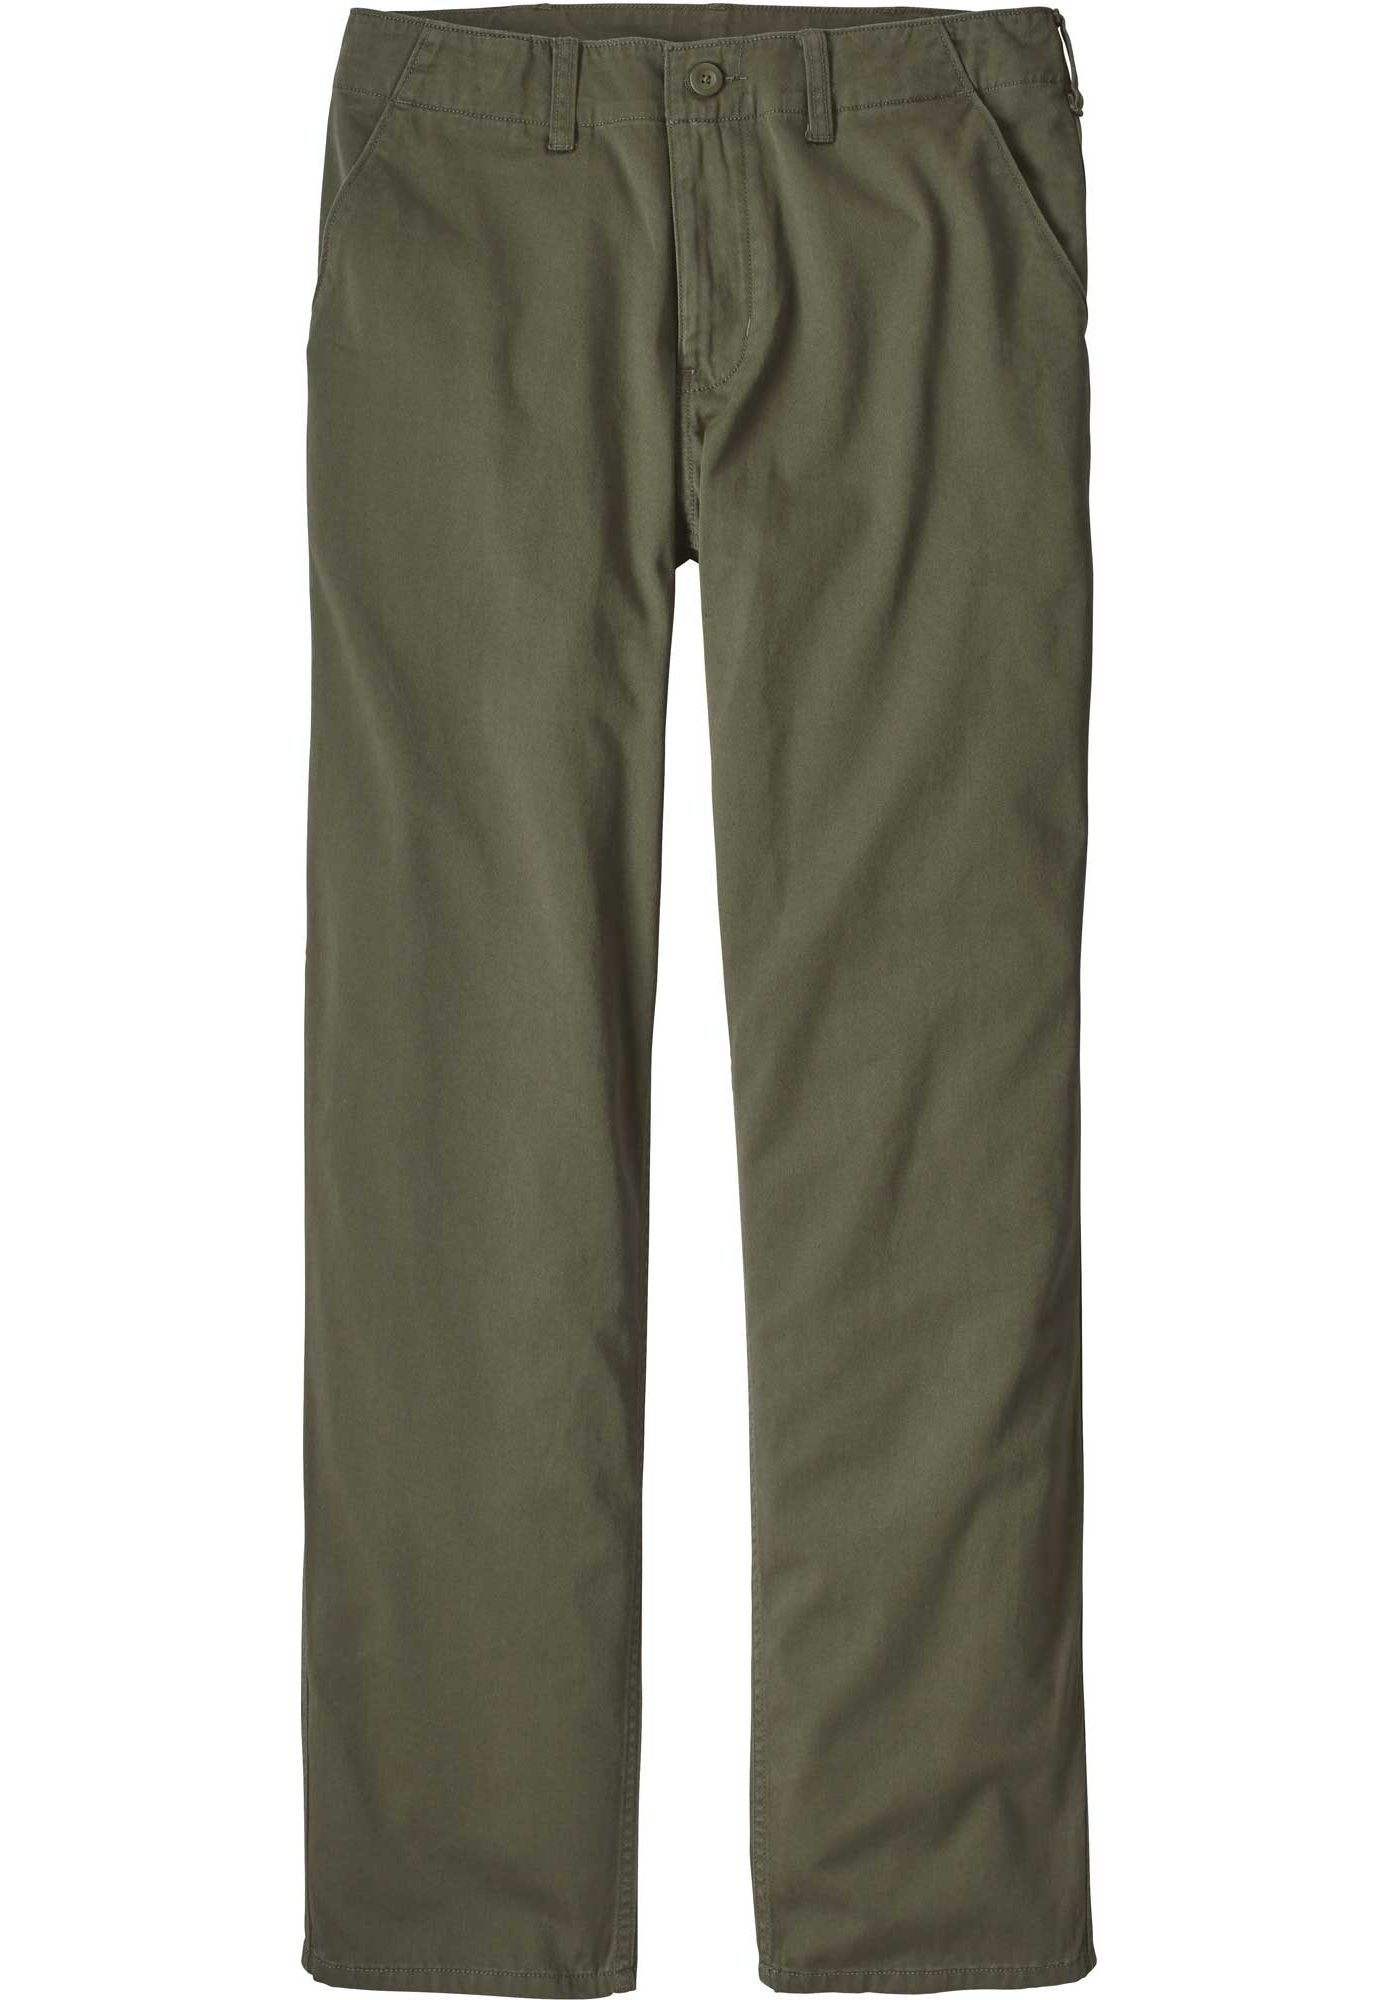 "Patagonia Men's Four Canyons Twill 32"" Pants"